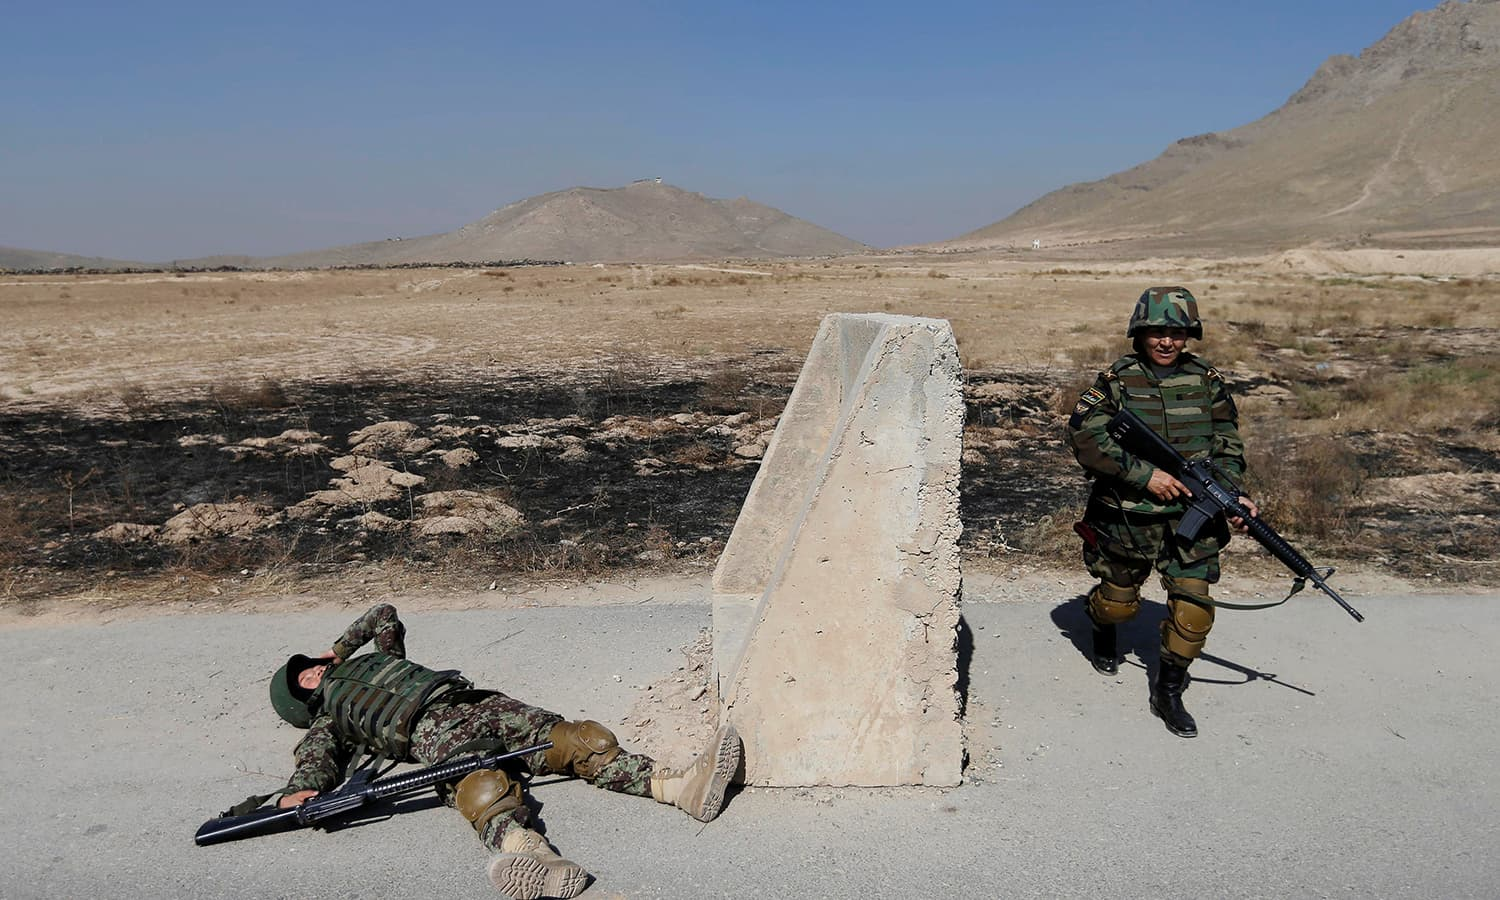 Afghan soldier Tamana, 19 (L), and commander for female soldiers Lieutenant Colonel Cobra Tanha, 45 (R), simulate an injury during a training exercise at the Kabul Military Training Centre (KMTC) in Kabul─Reuters